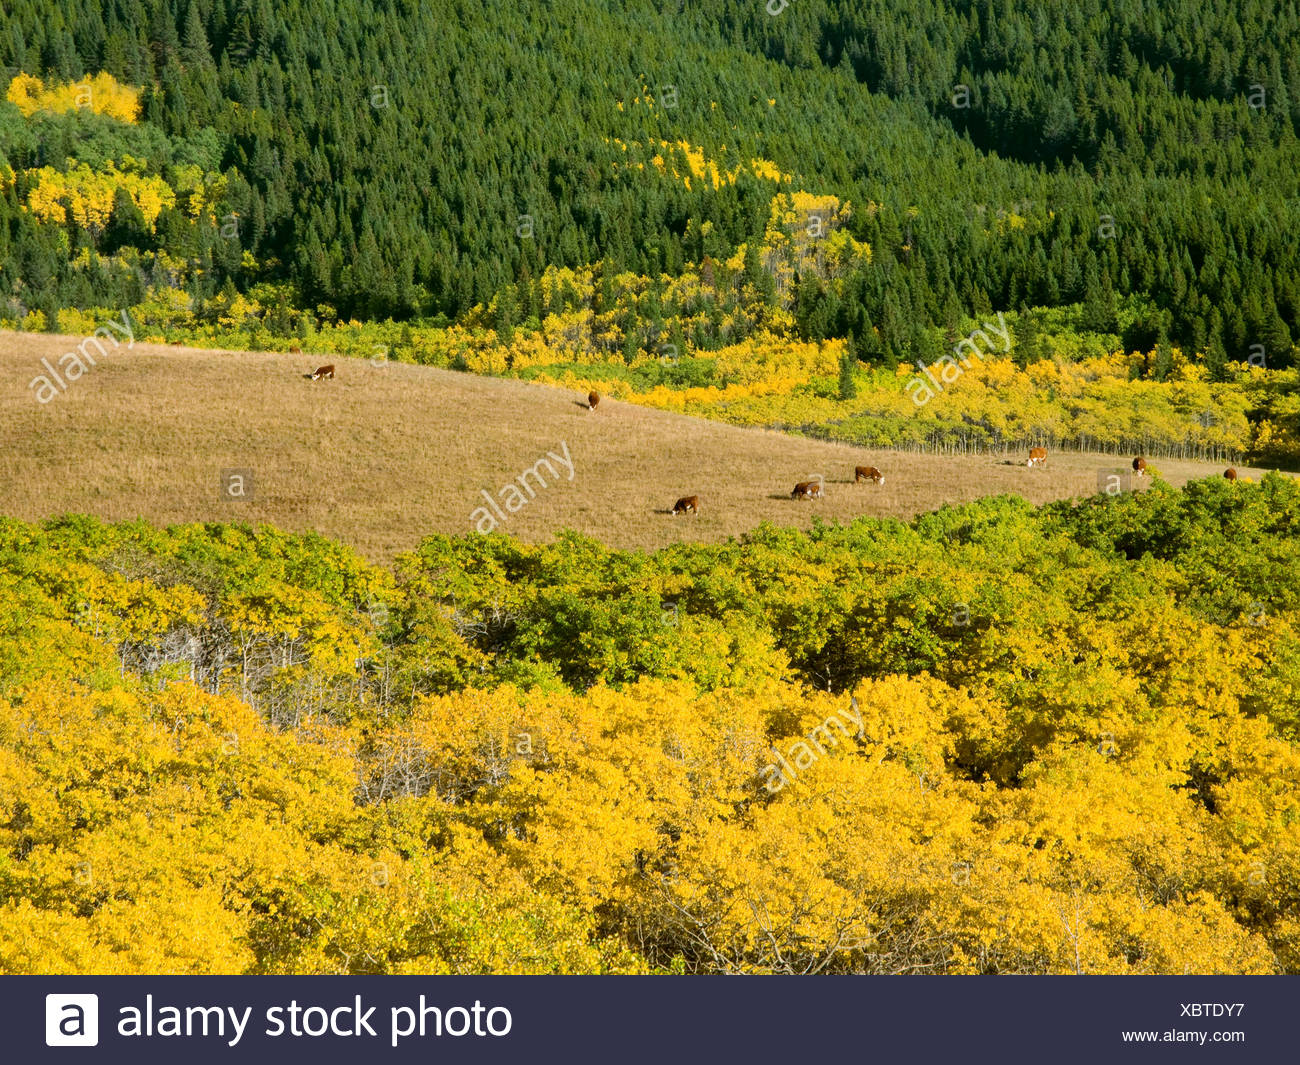 Livestock - Hereford cows grazing on a mountain meadow amidst fall colors / Alberta, Canada. - Stock Image